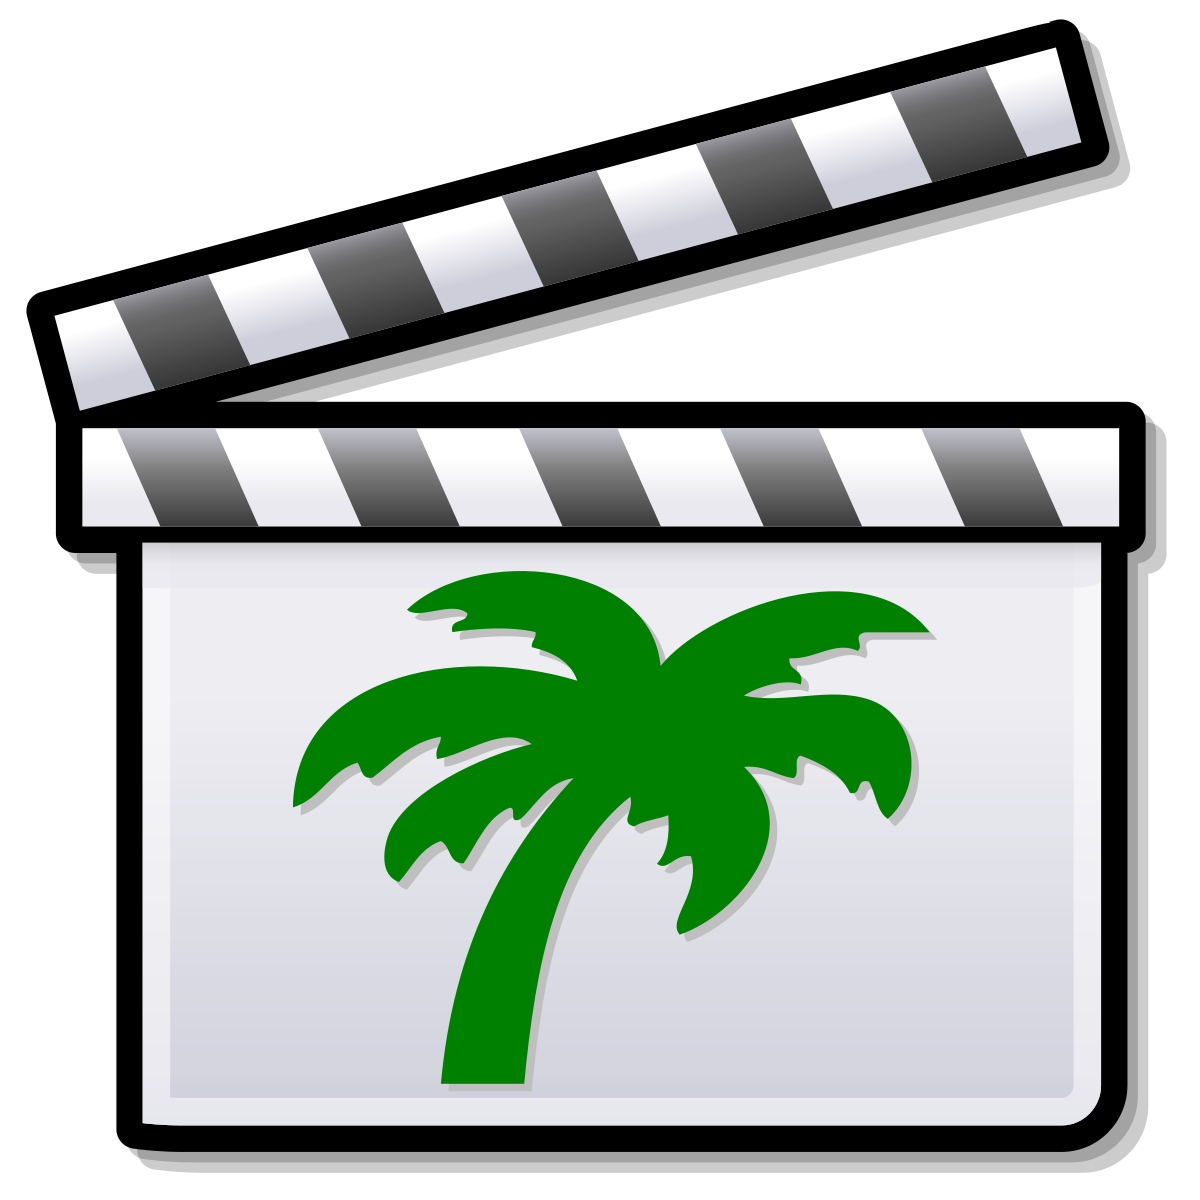 Lists of adventure films. Gator clipart gunn